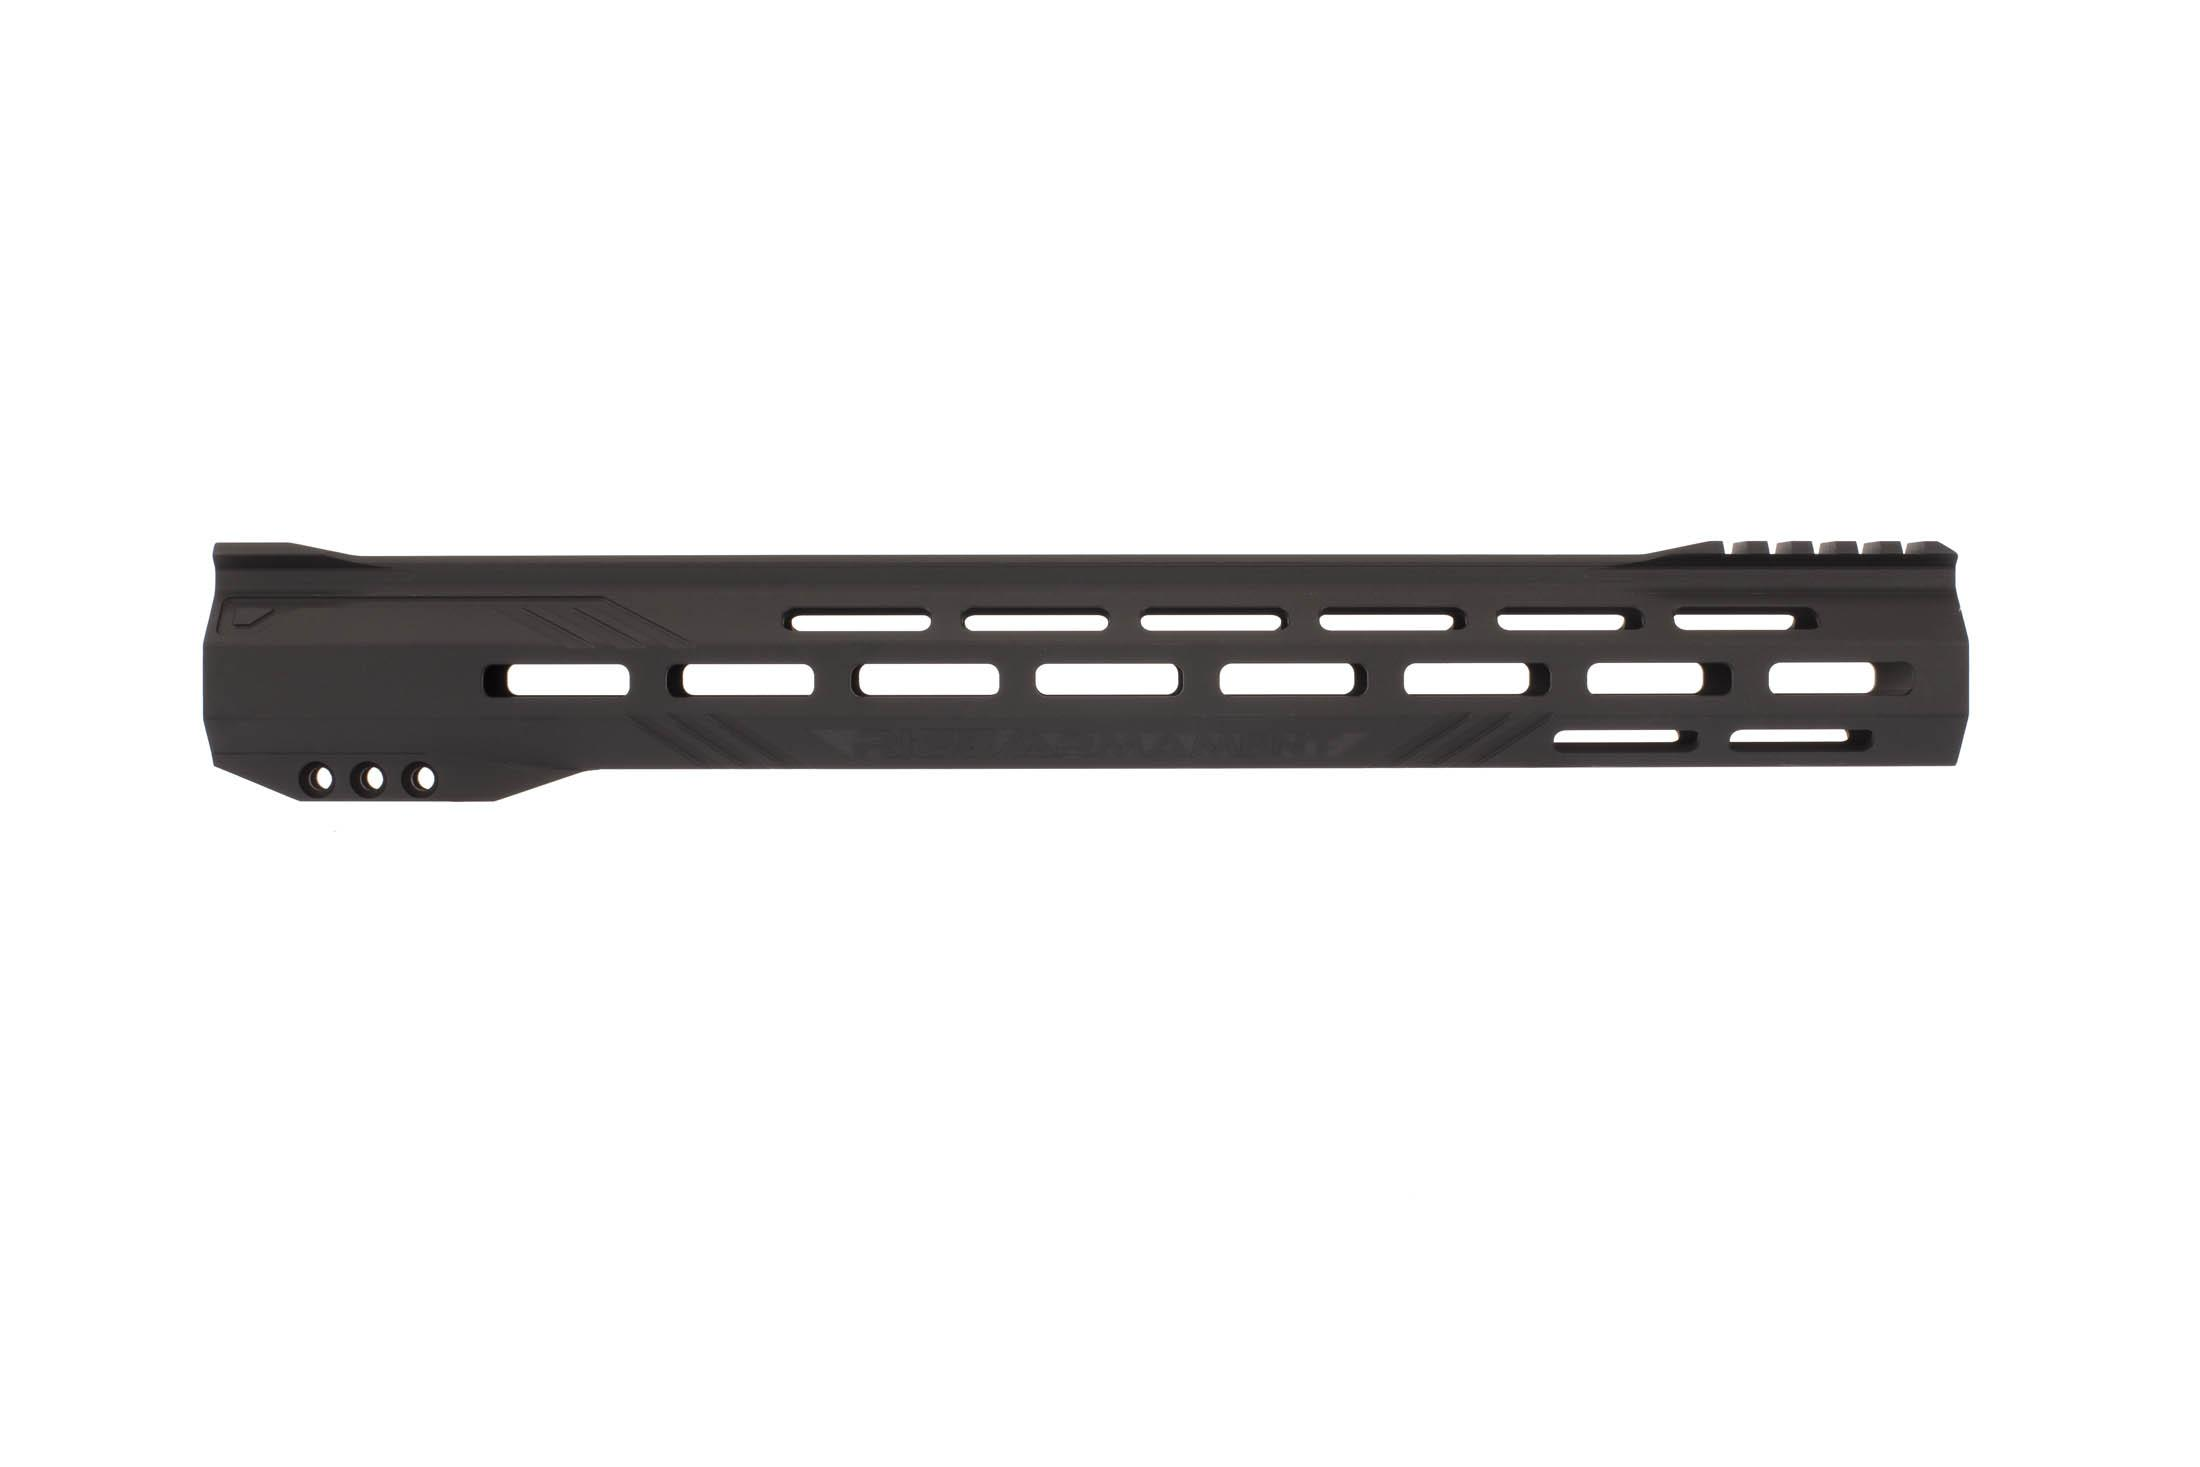 The RISE Armament 15in Stinger Slimline Handguard has an integrated 5-slot picatinny rail at the 12 o'clock position.